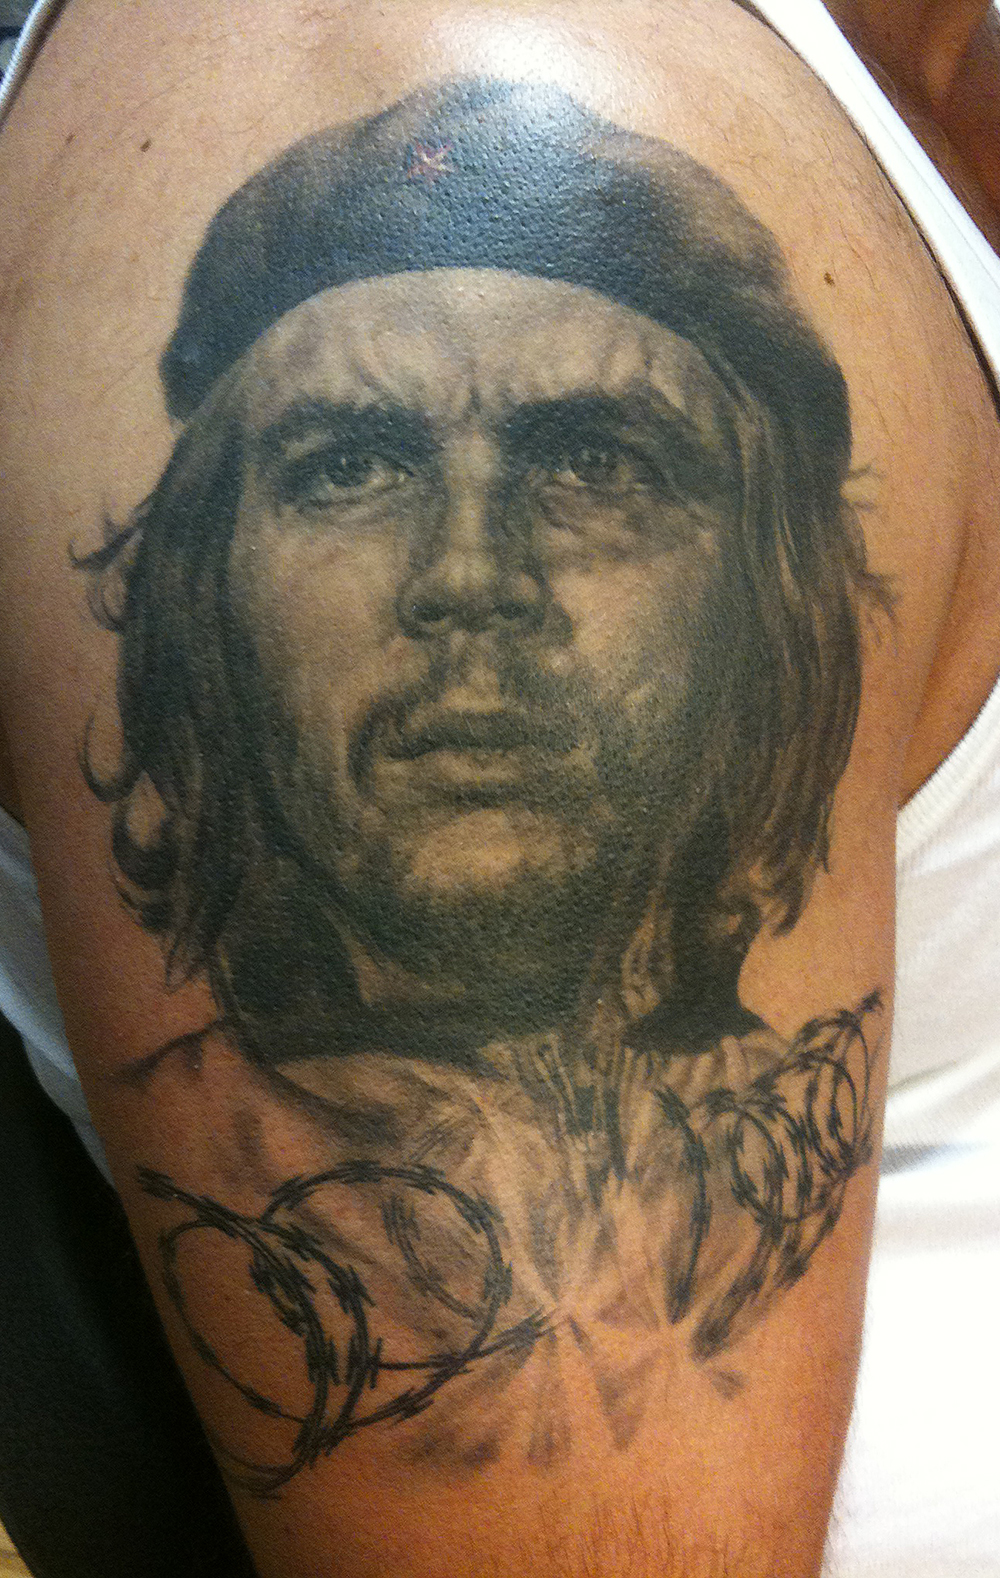 Black and Grey Che Guevara Portrait Tattoo with Breaking Razor Wire, (healed photo)